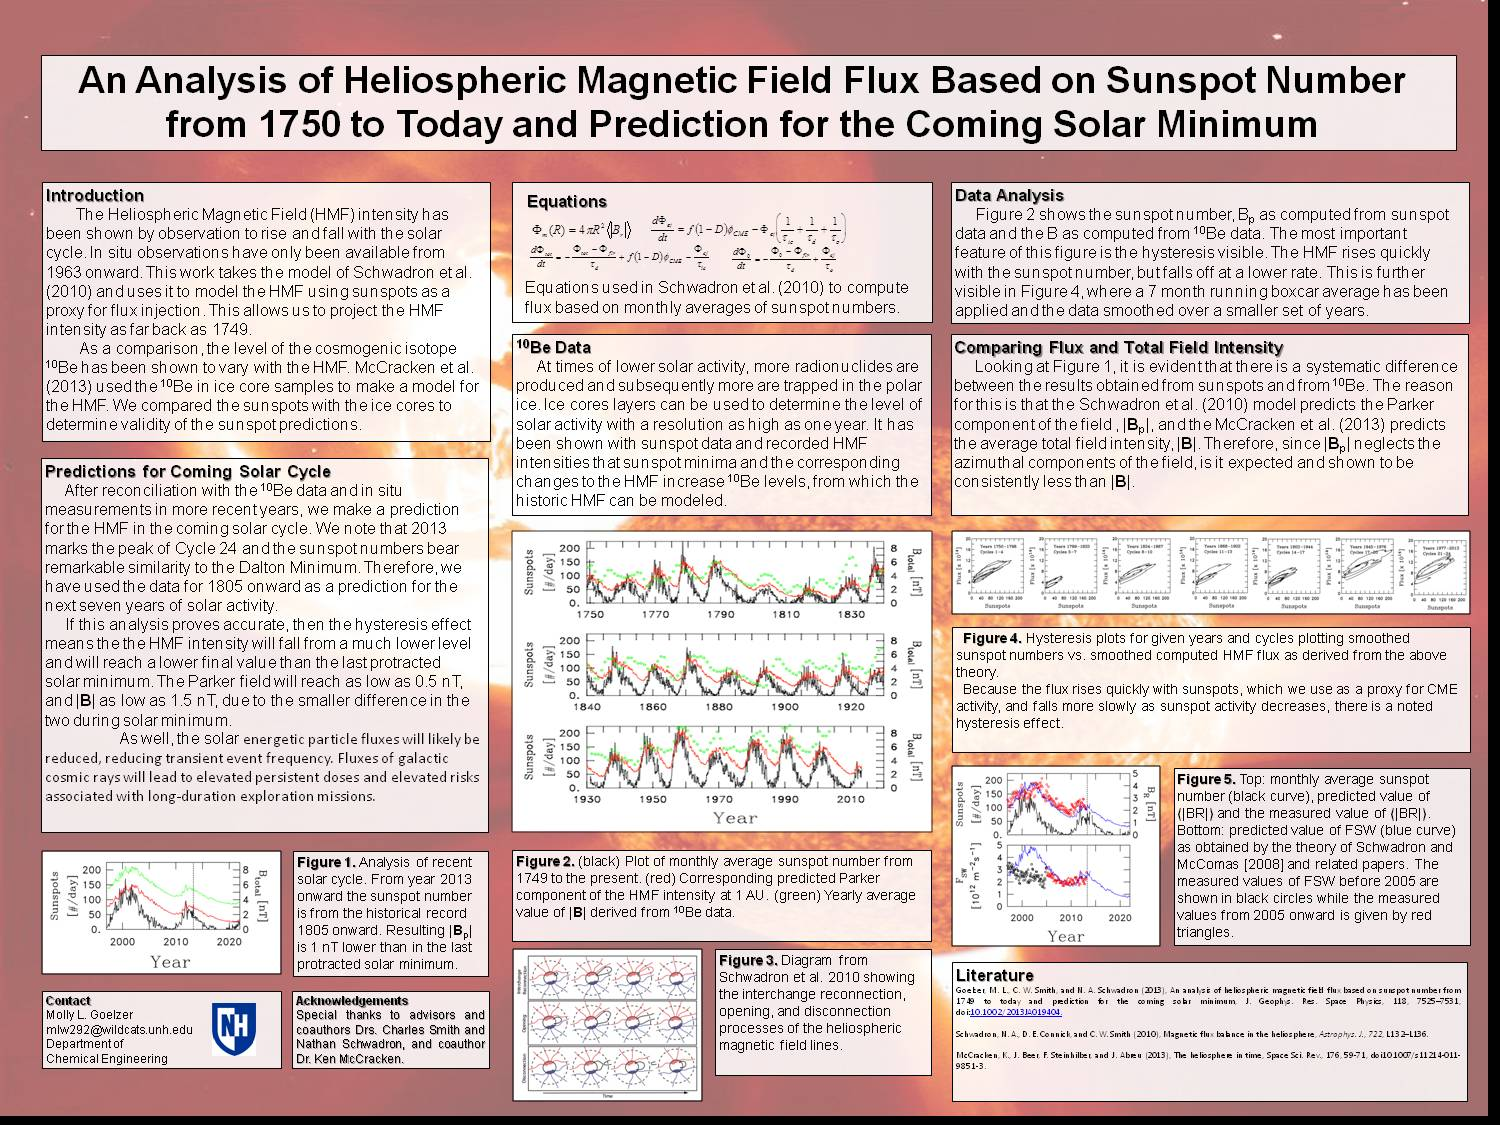 Heliospheric Magnetic Flux by CWSmith